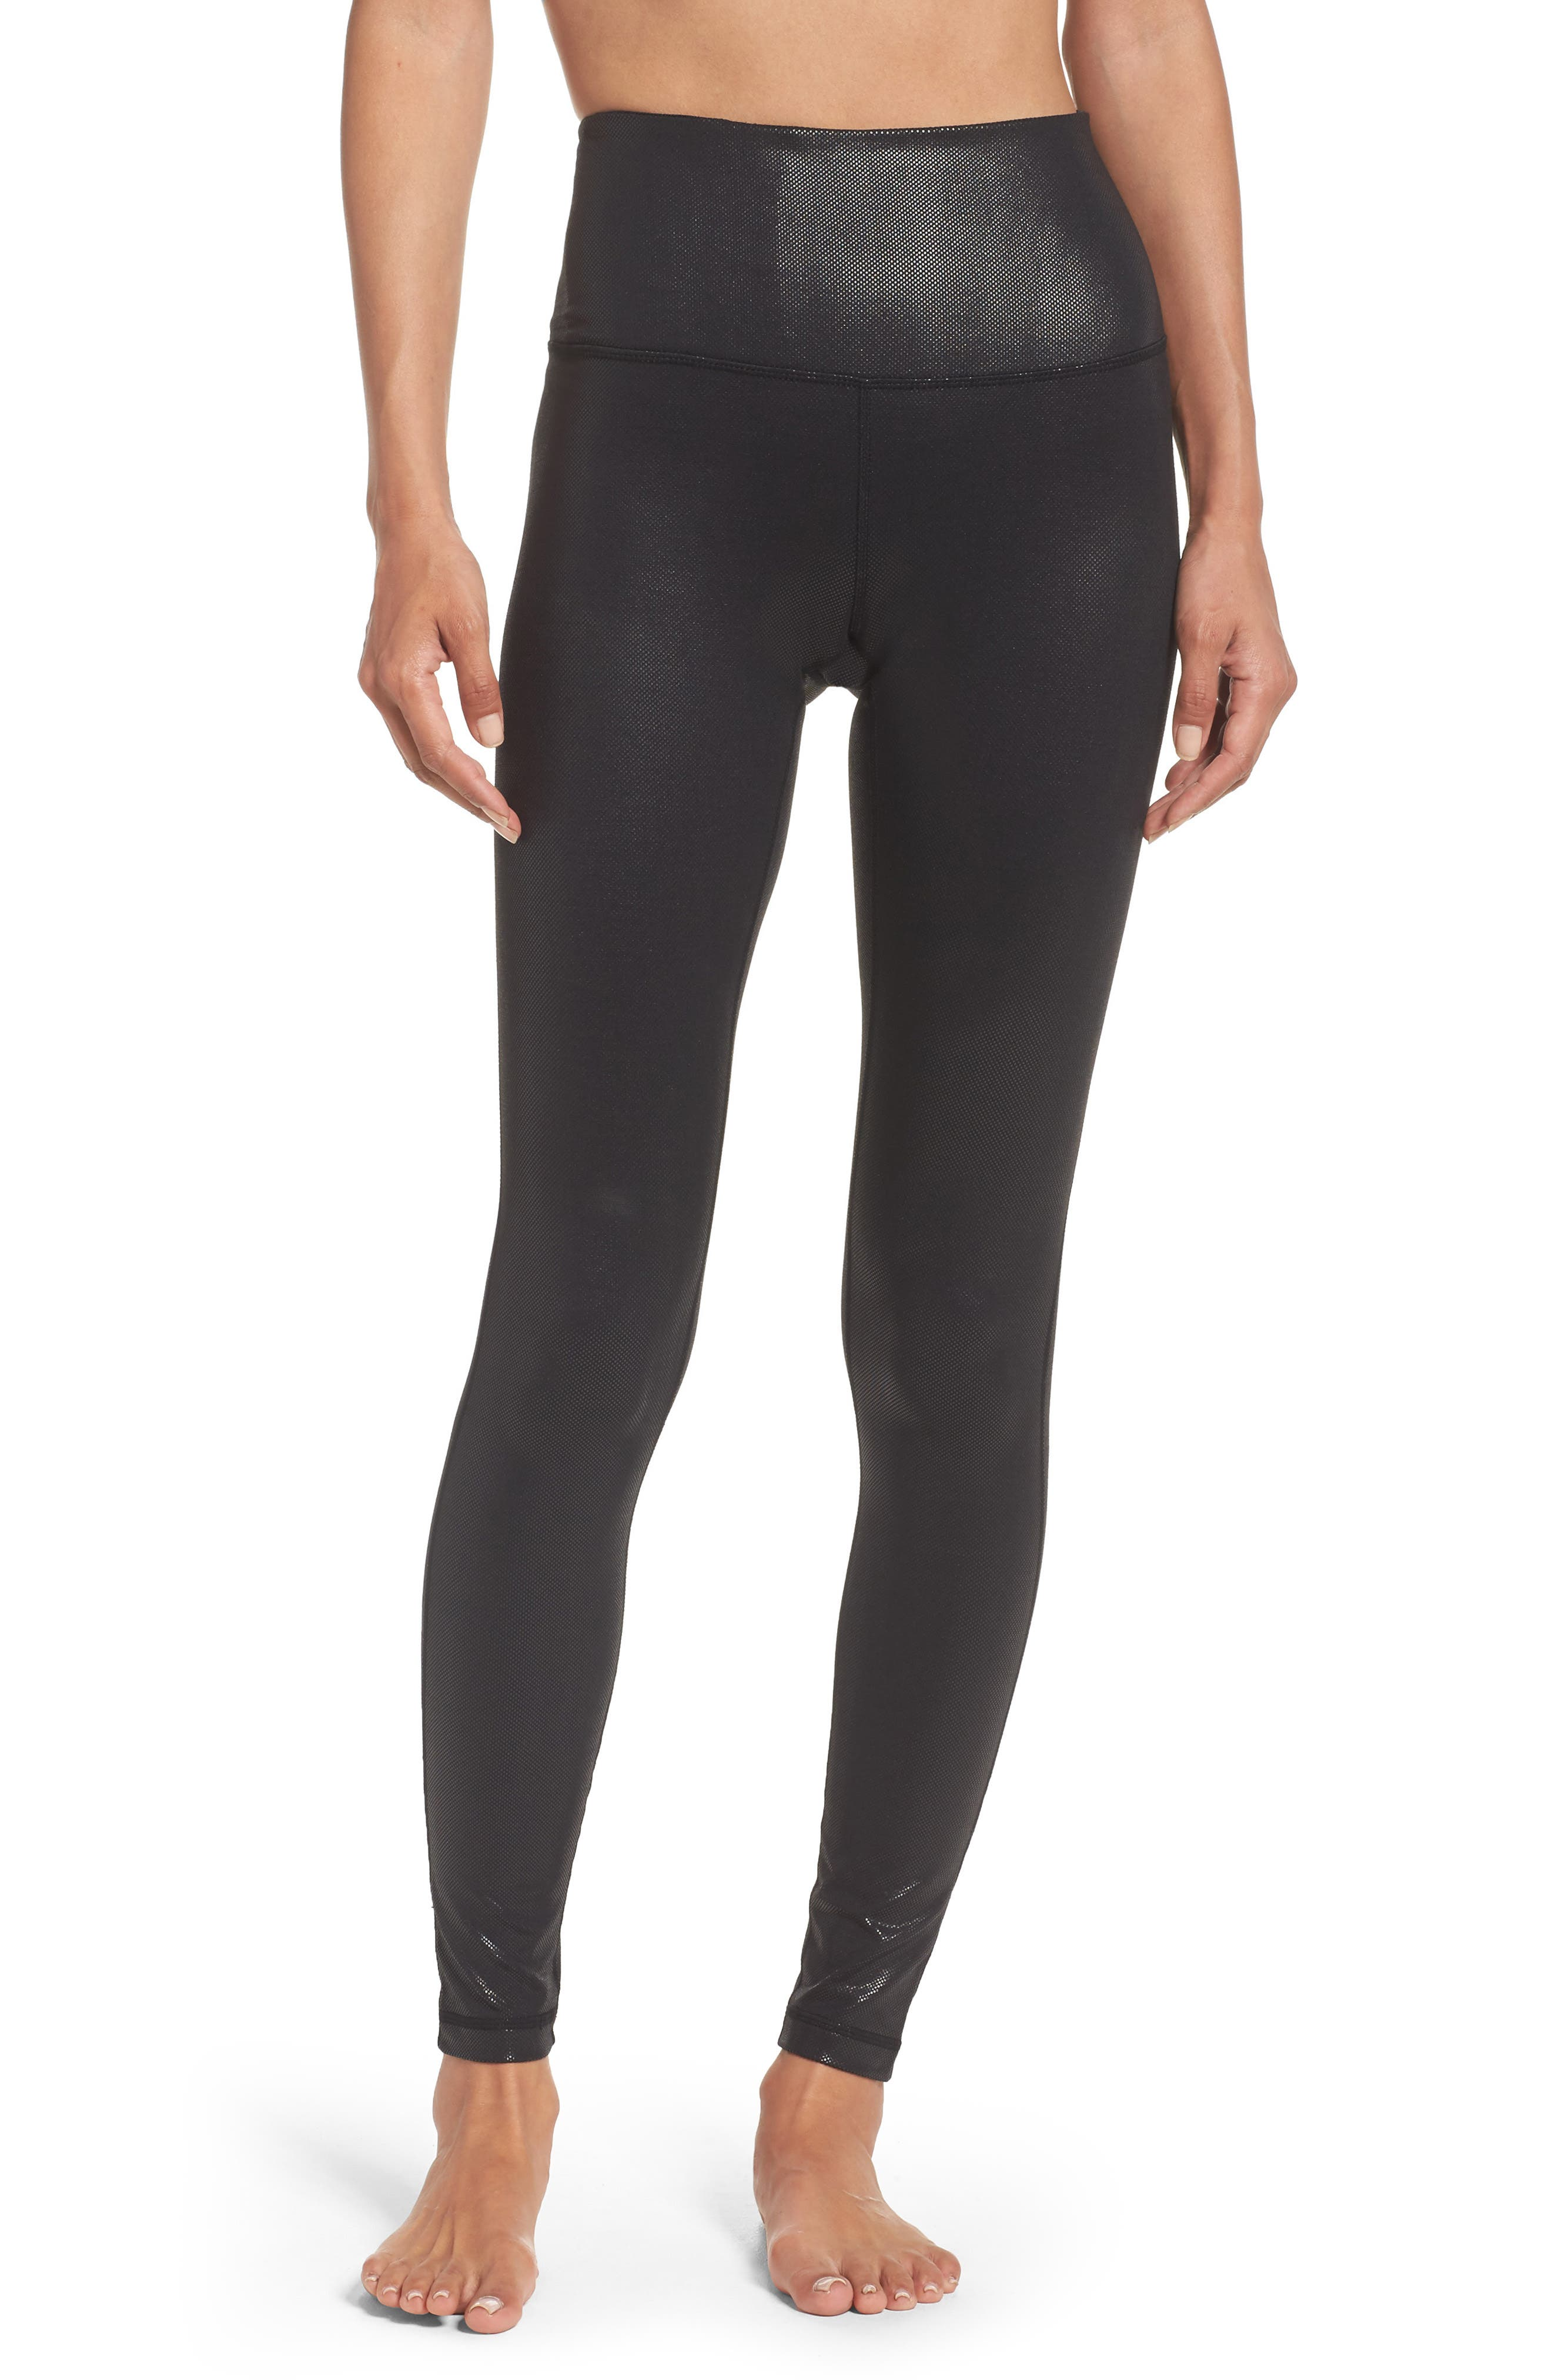 Live-In High Waist Leggings,                             Main thumbnail 1, color,                             002